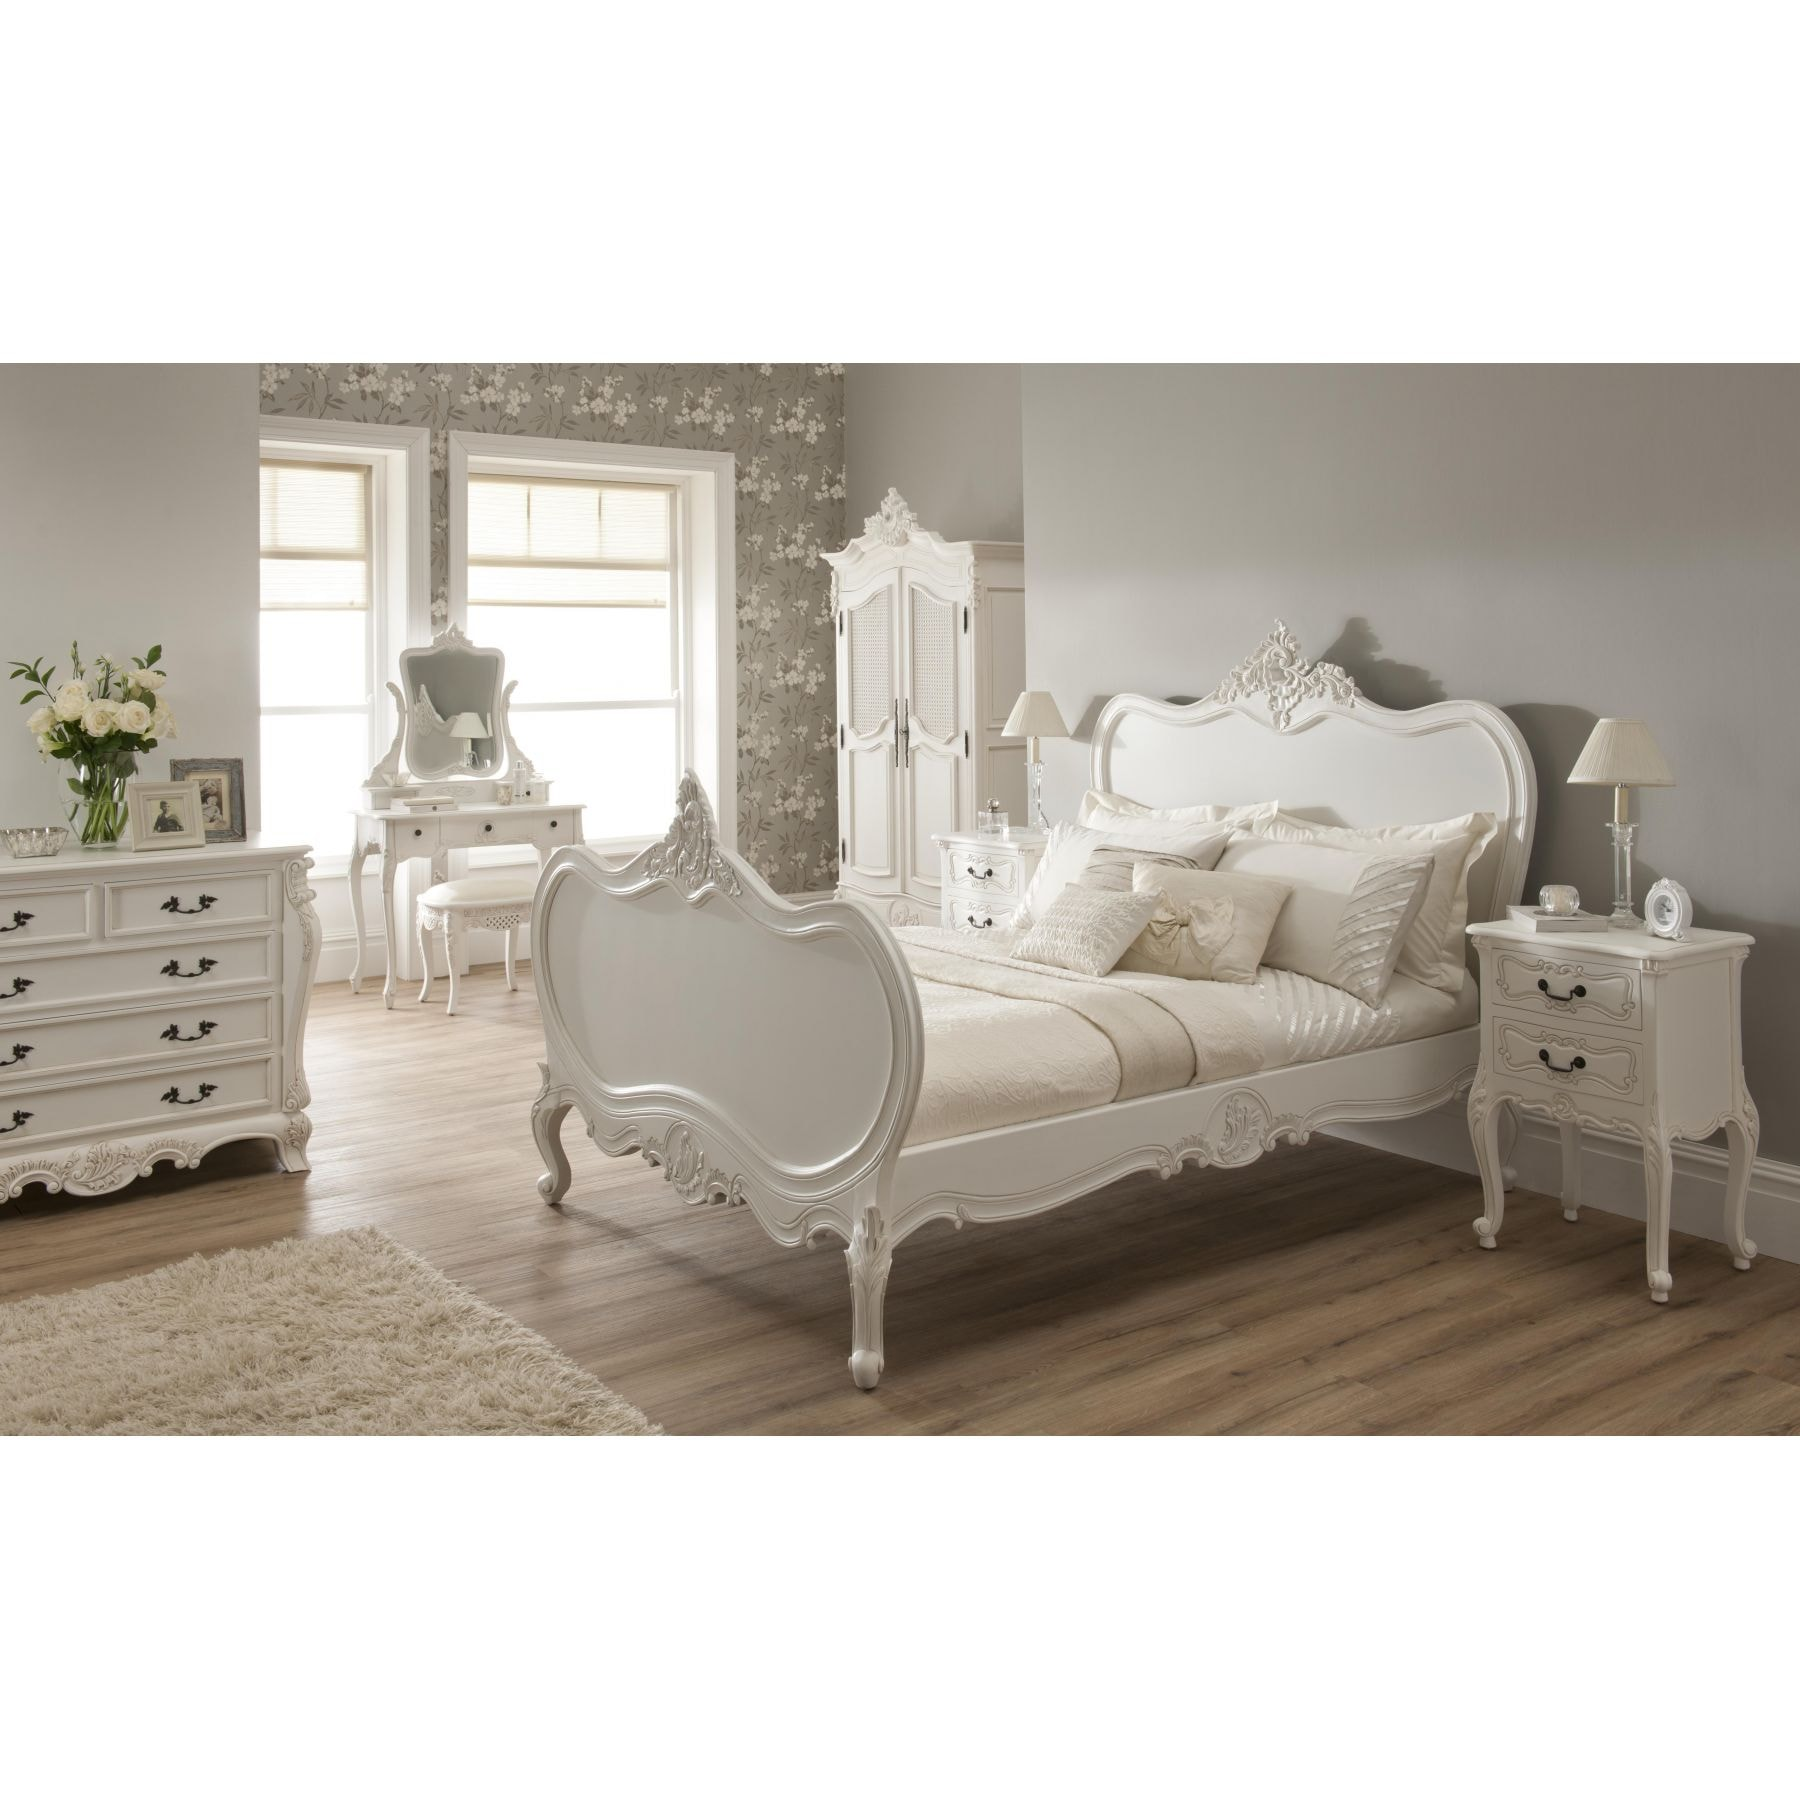 La Rochelle Bedroom Furniture La Rochelle Antique French Bed In A Wonderful Design And Style